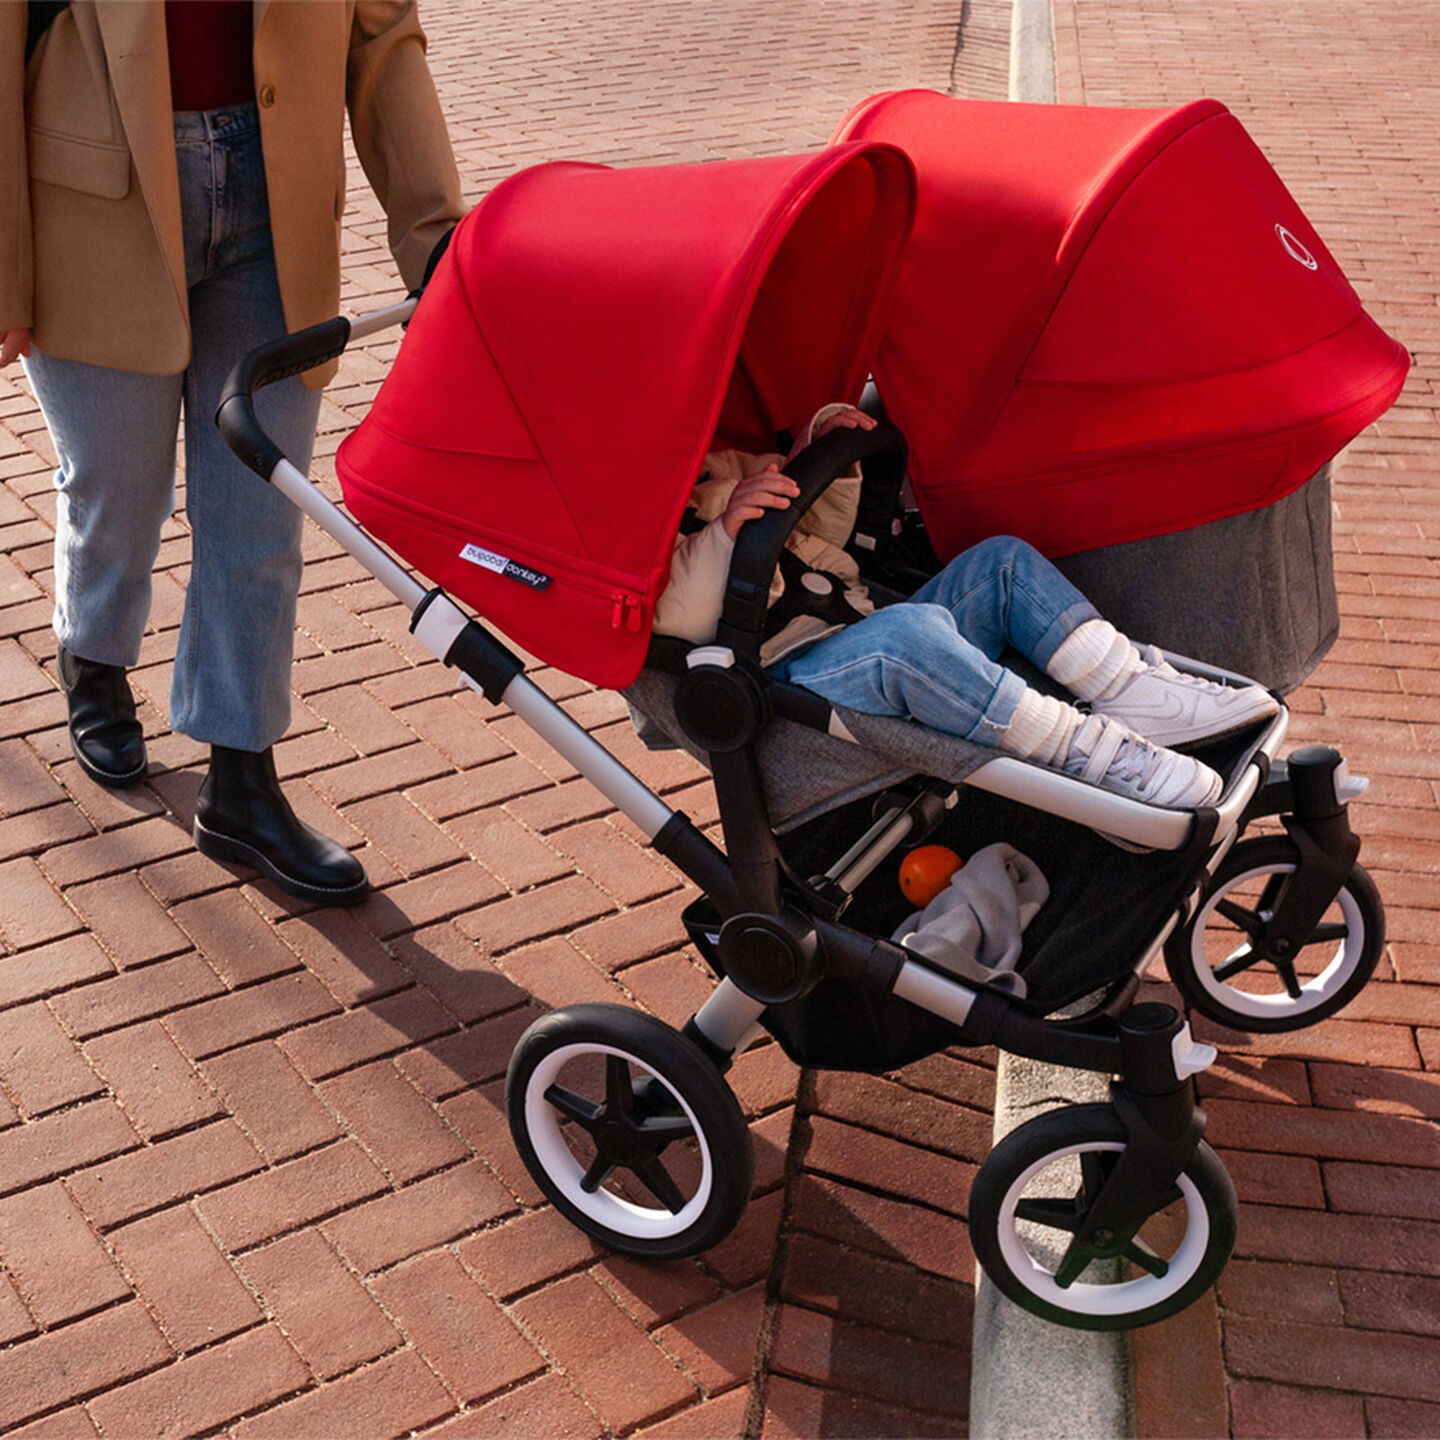 Stroller going up a curb